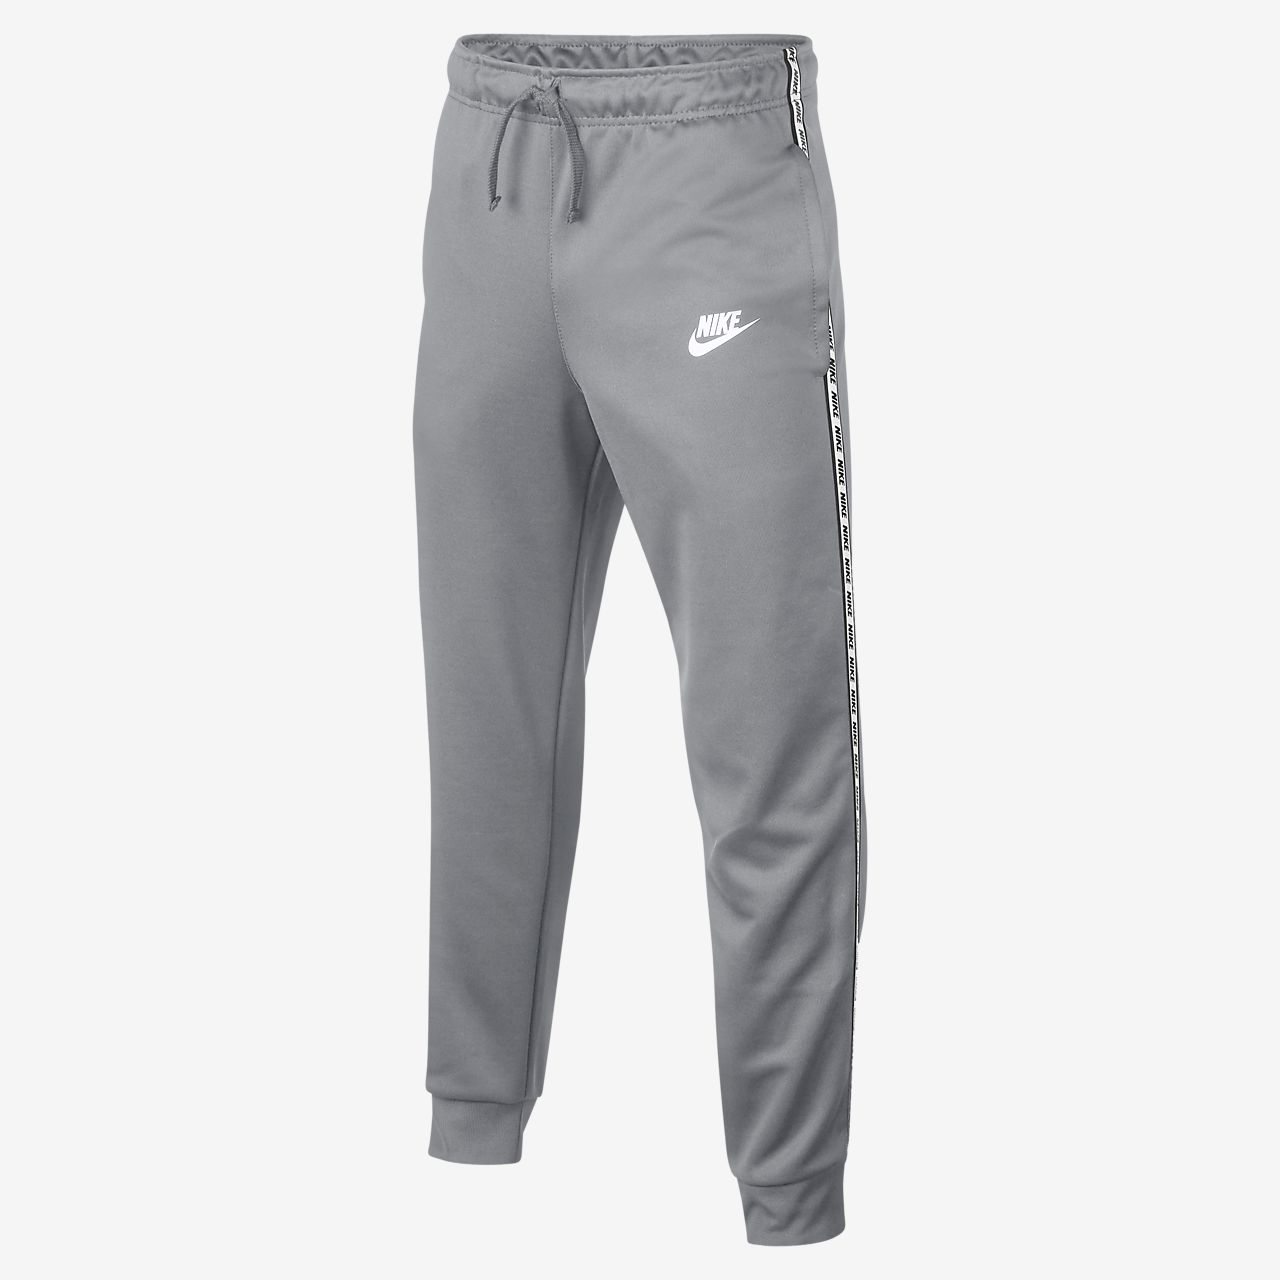 Nike Sportswear Older Kids' Trousers